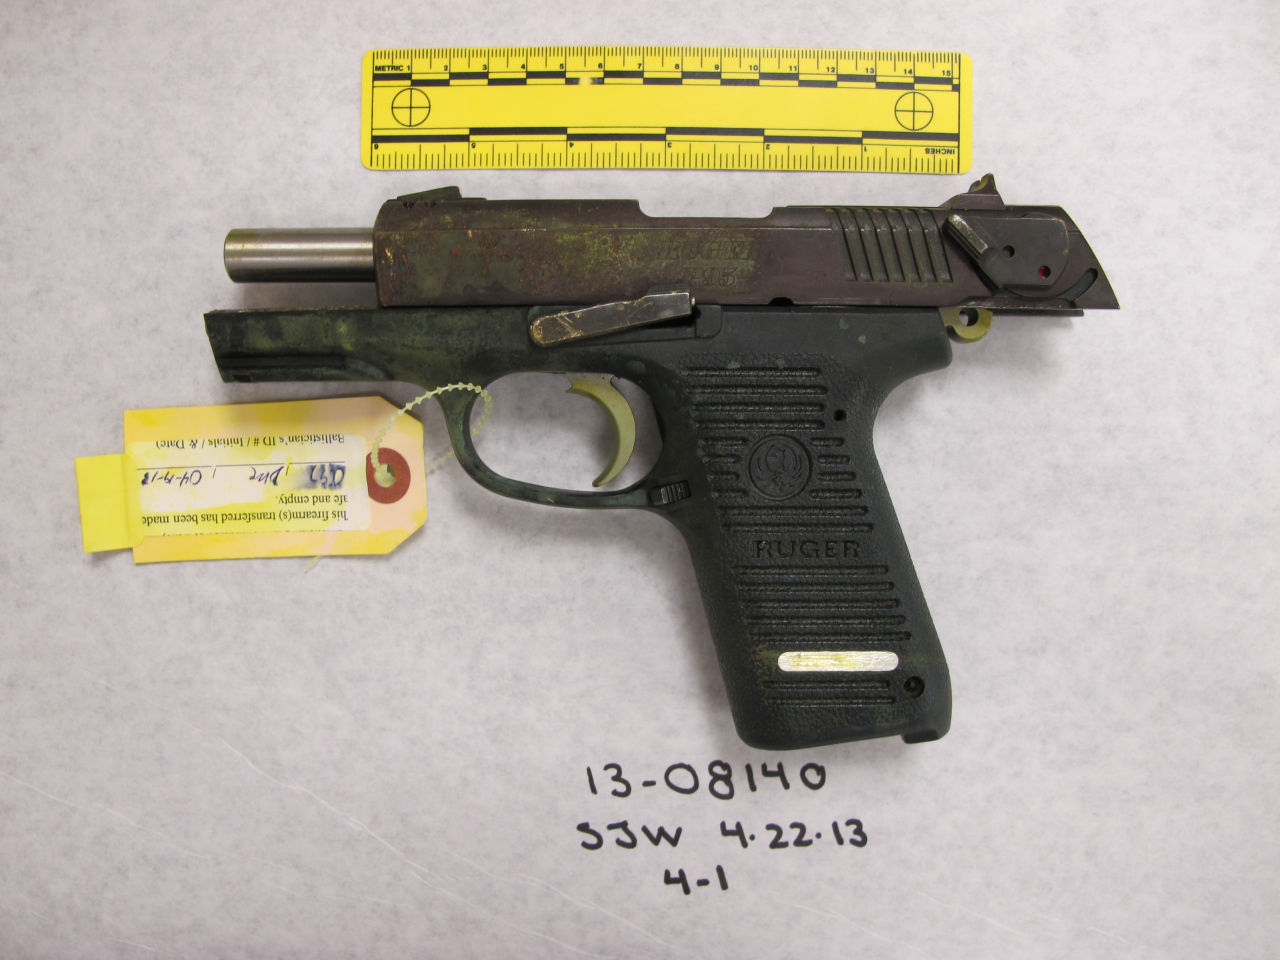 Stephen Silva said during testimony Tuesday that he loaned Dzhokhar Tsarnaev a P95 Ruger pistol in February 2013. Authorities say the P95 Ruger was the gun used to kill MIT police officer Sean Collier. (Department of Justice)